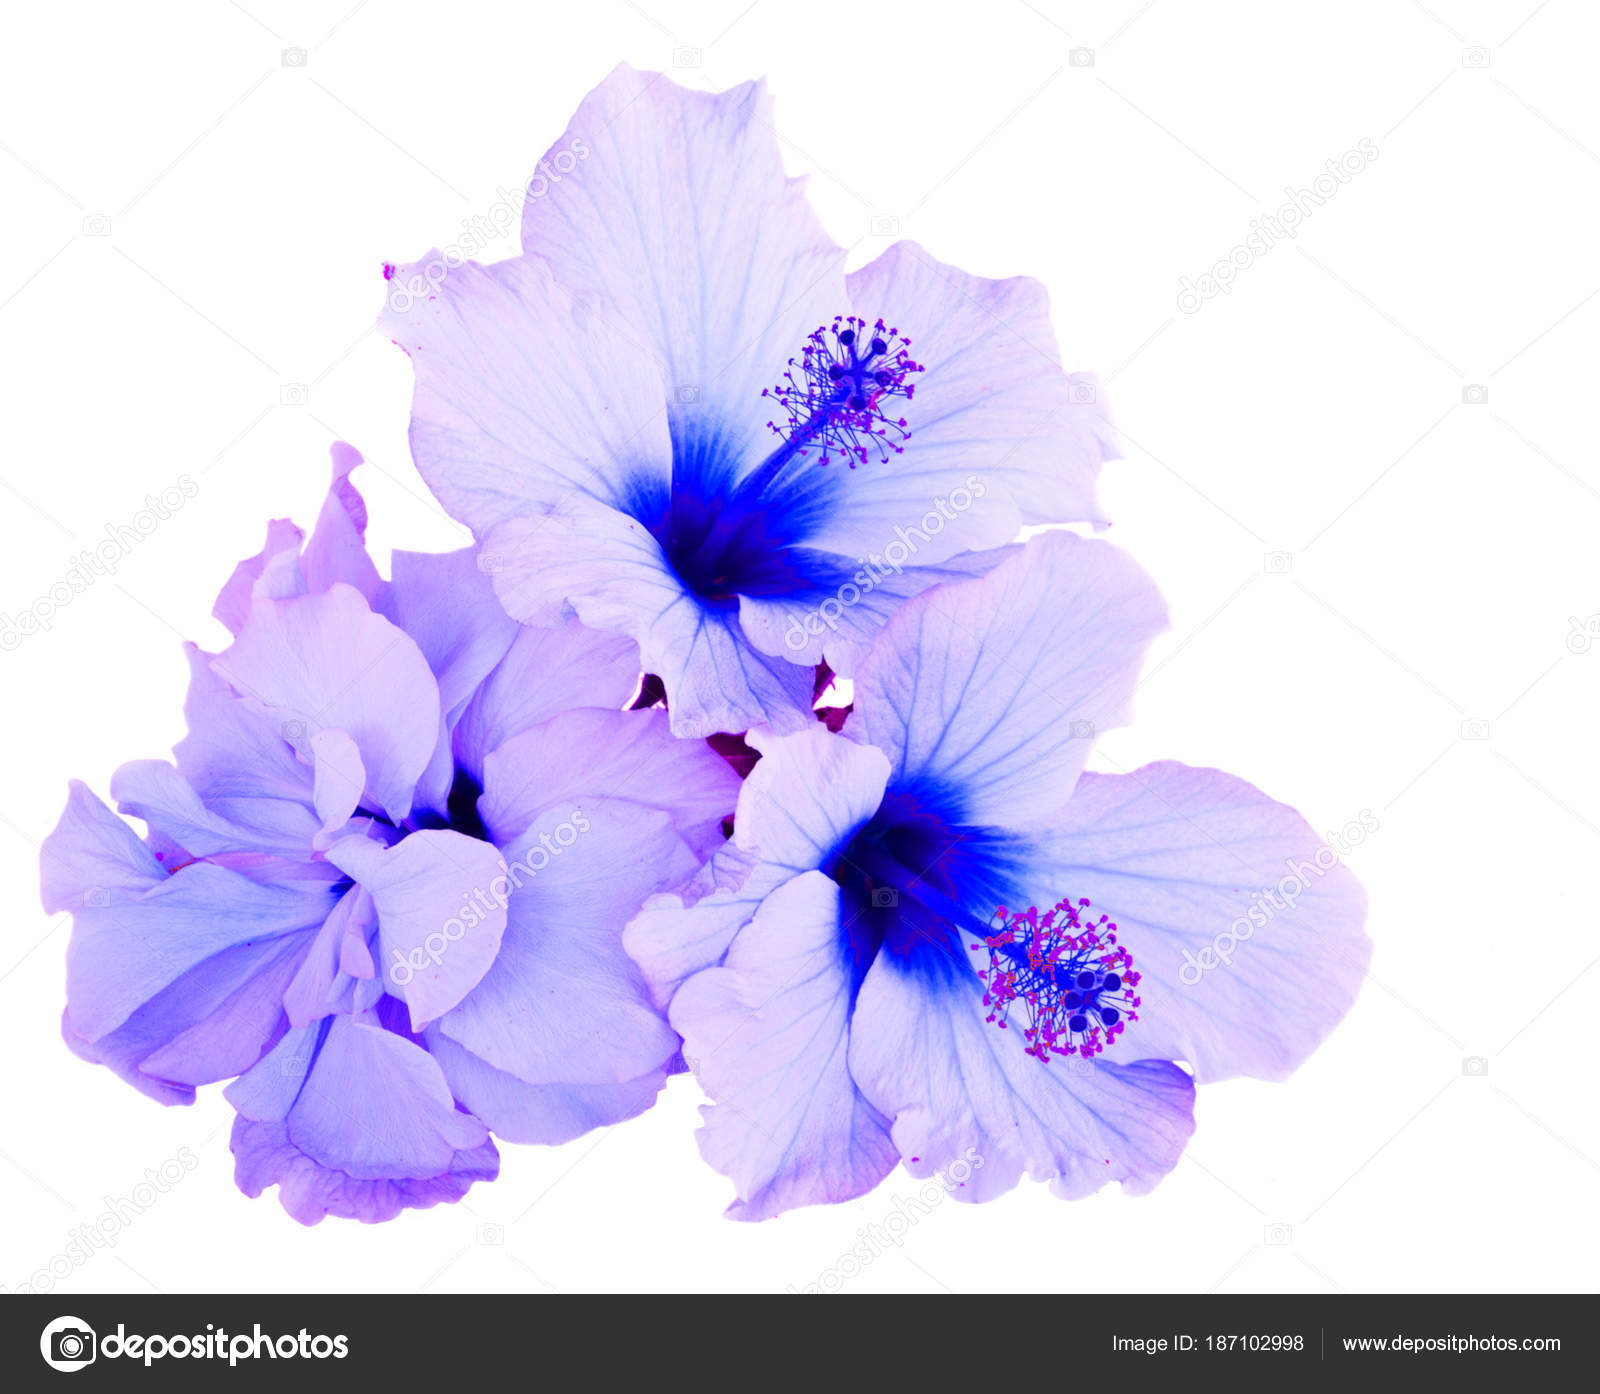 Orange hibiscus flower stock photo neirfys 187102998 tropical flower pile of blue hibiscus flowers isolated on white background photo by neirfys izmirmasajfo